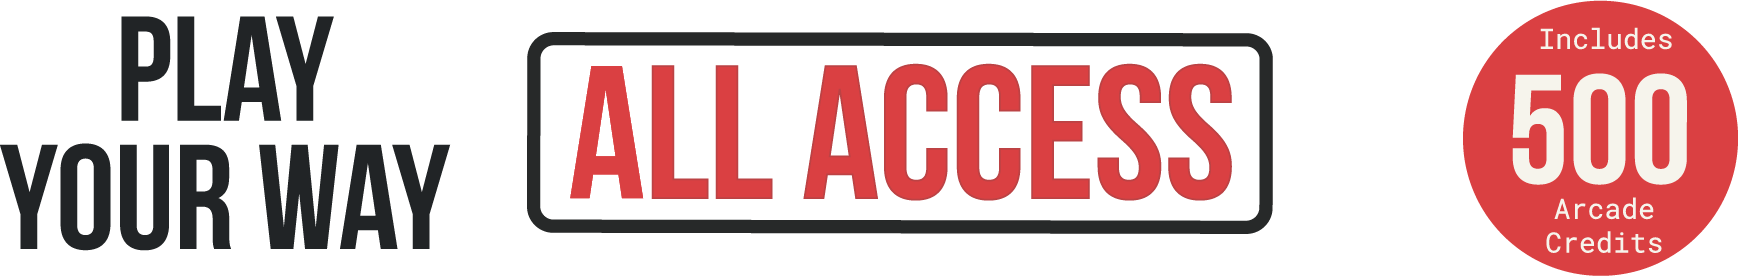 Play your way all access